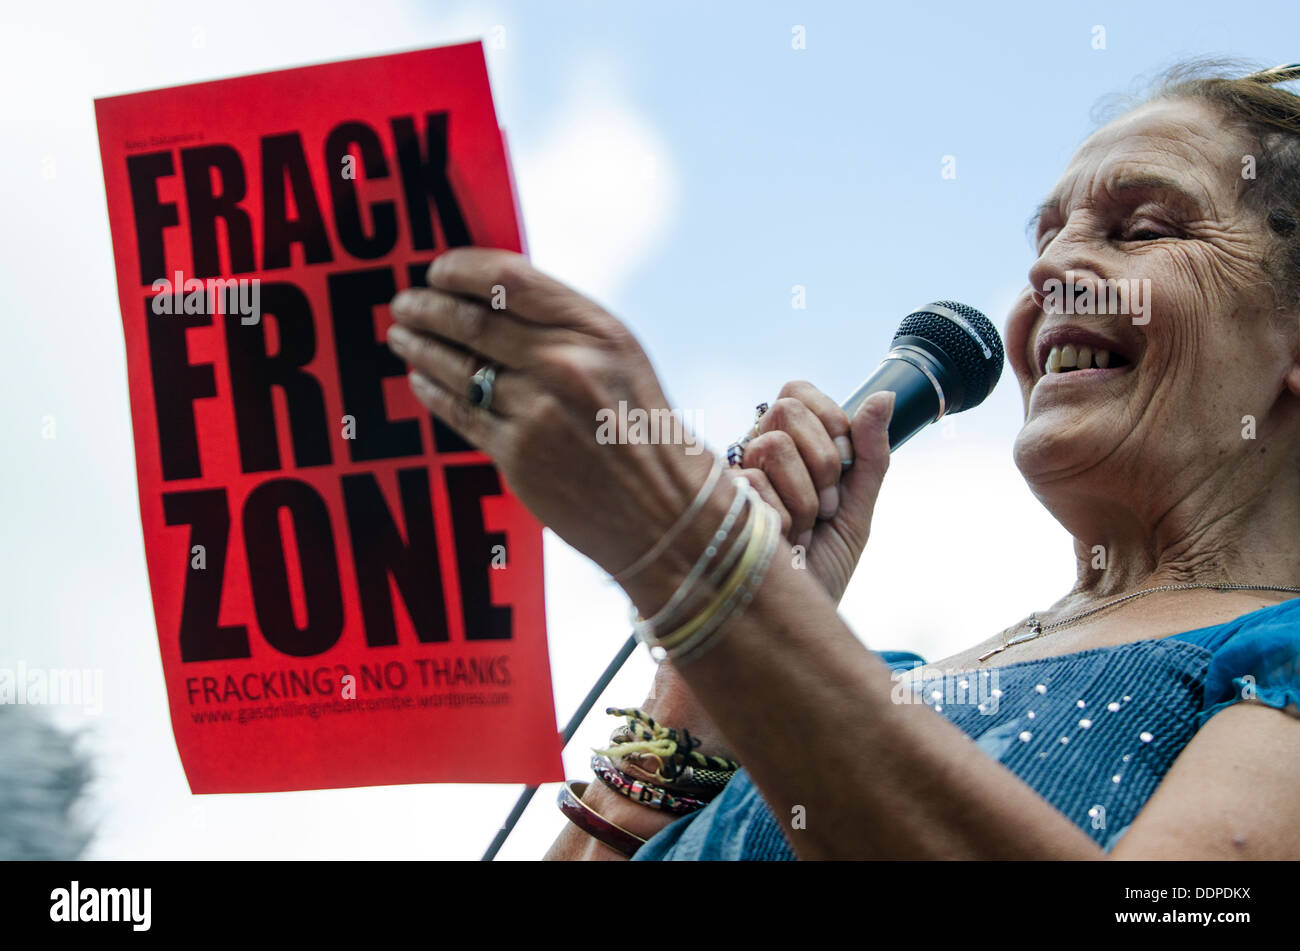 Frances Leader High Resolution Stock Photography and Images - Alamy